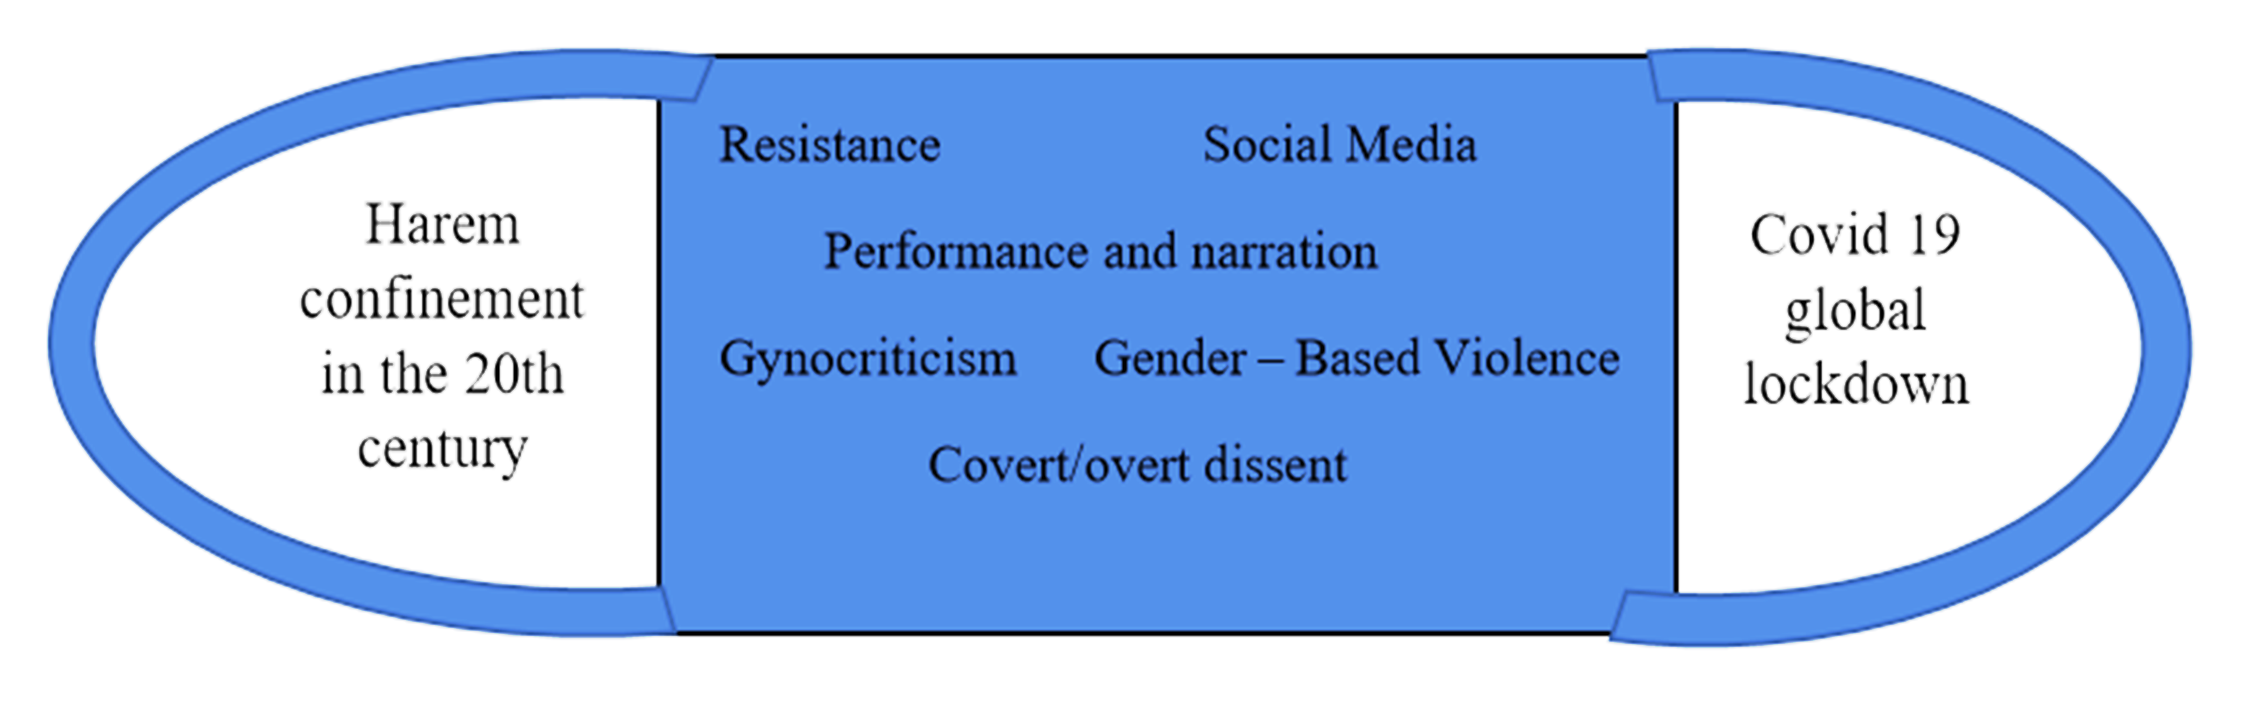 Resistance in the New Harem Era: Gendered Violence and the Power of Media in the Time of Covid-19 in Morocco